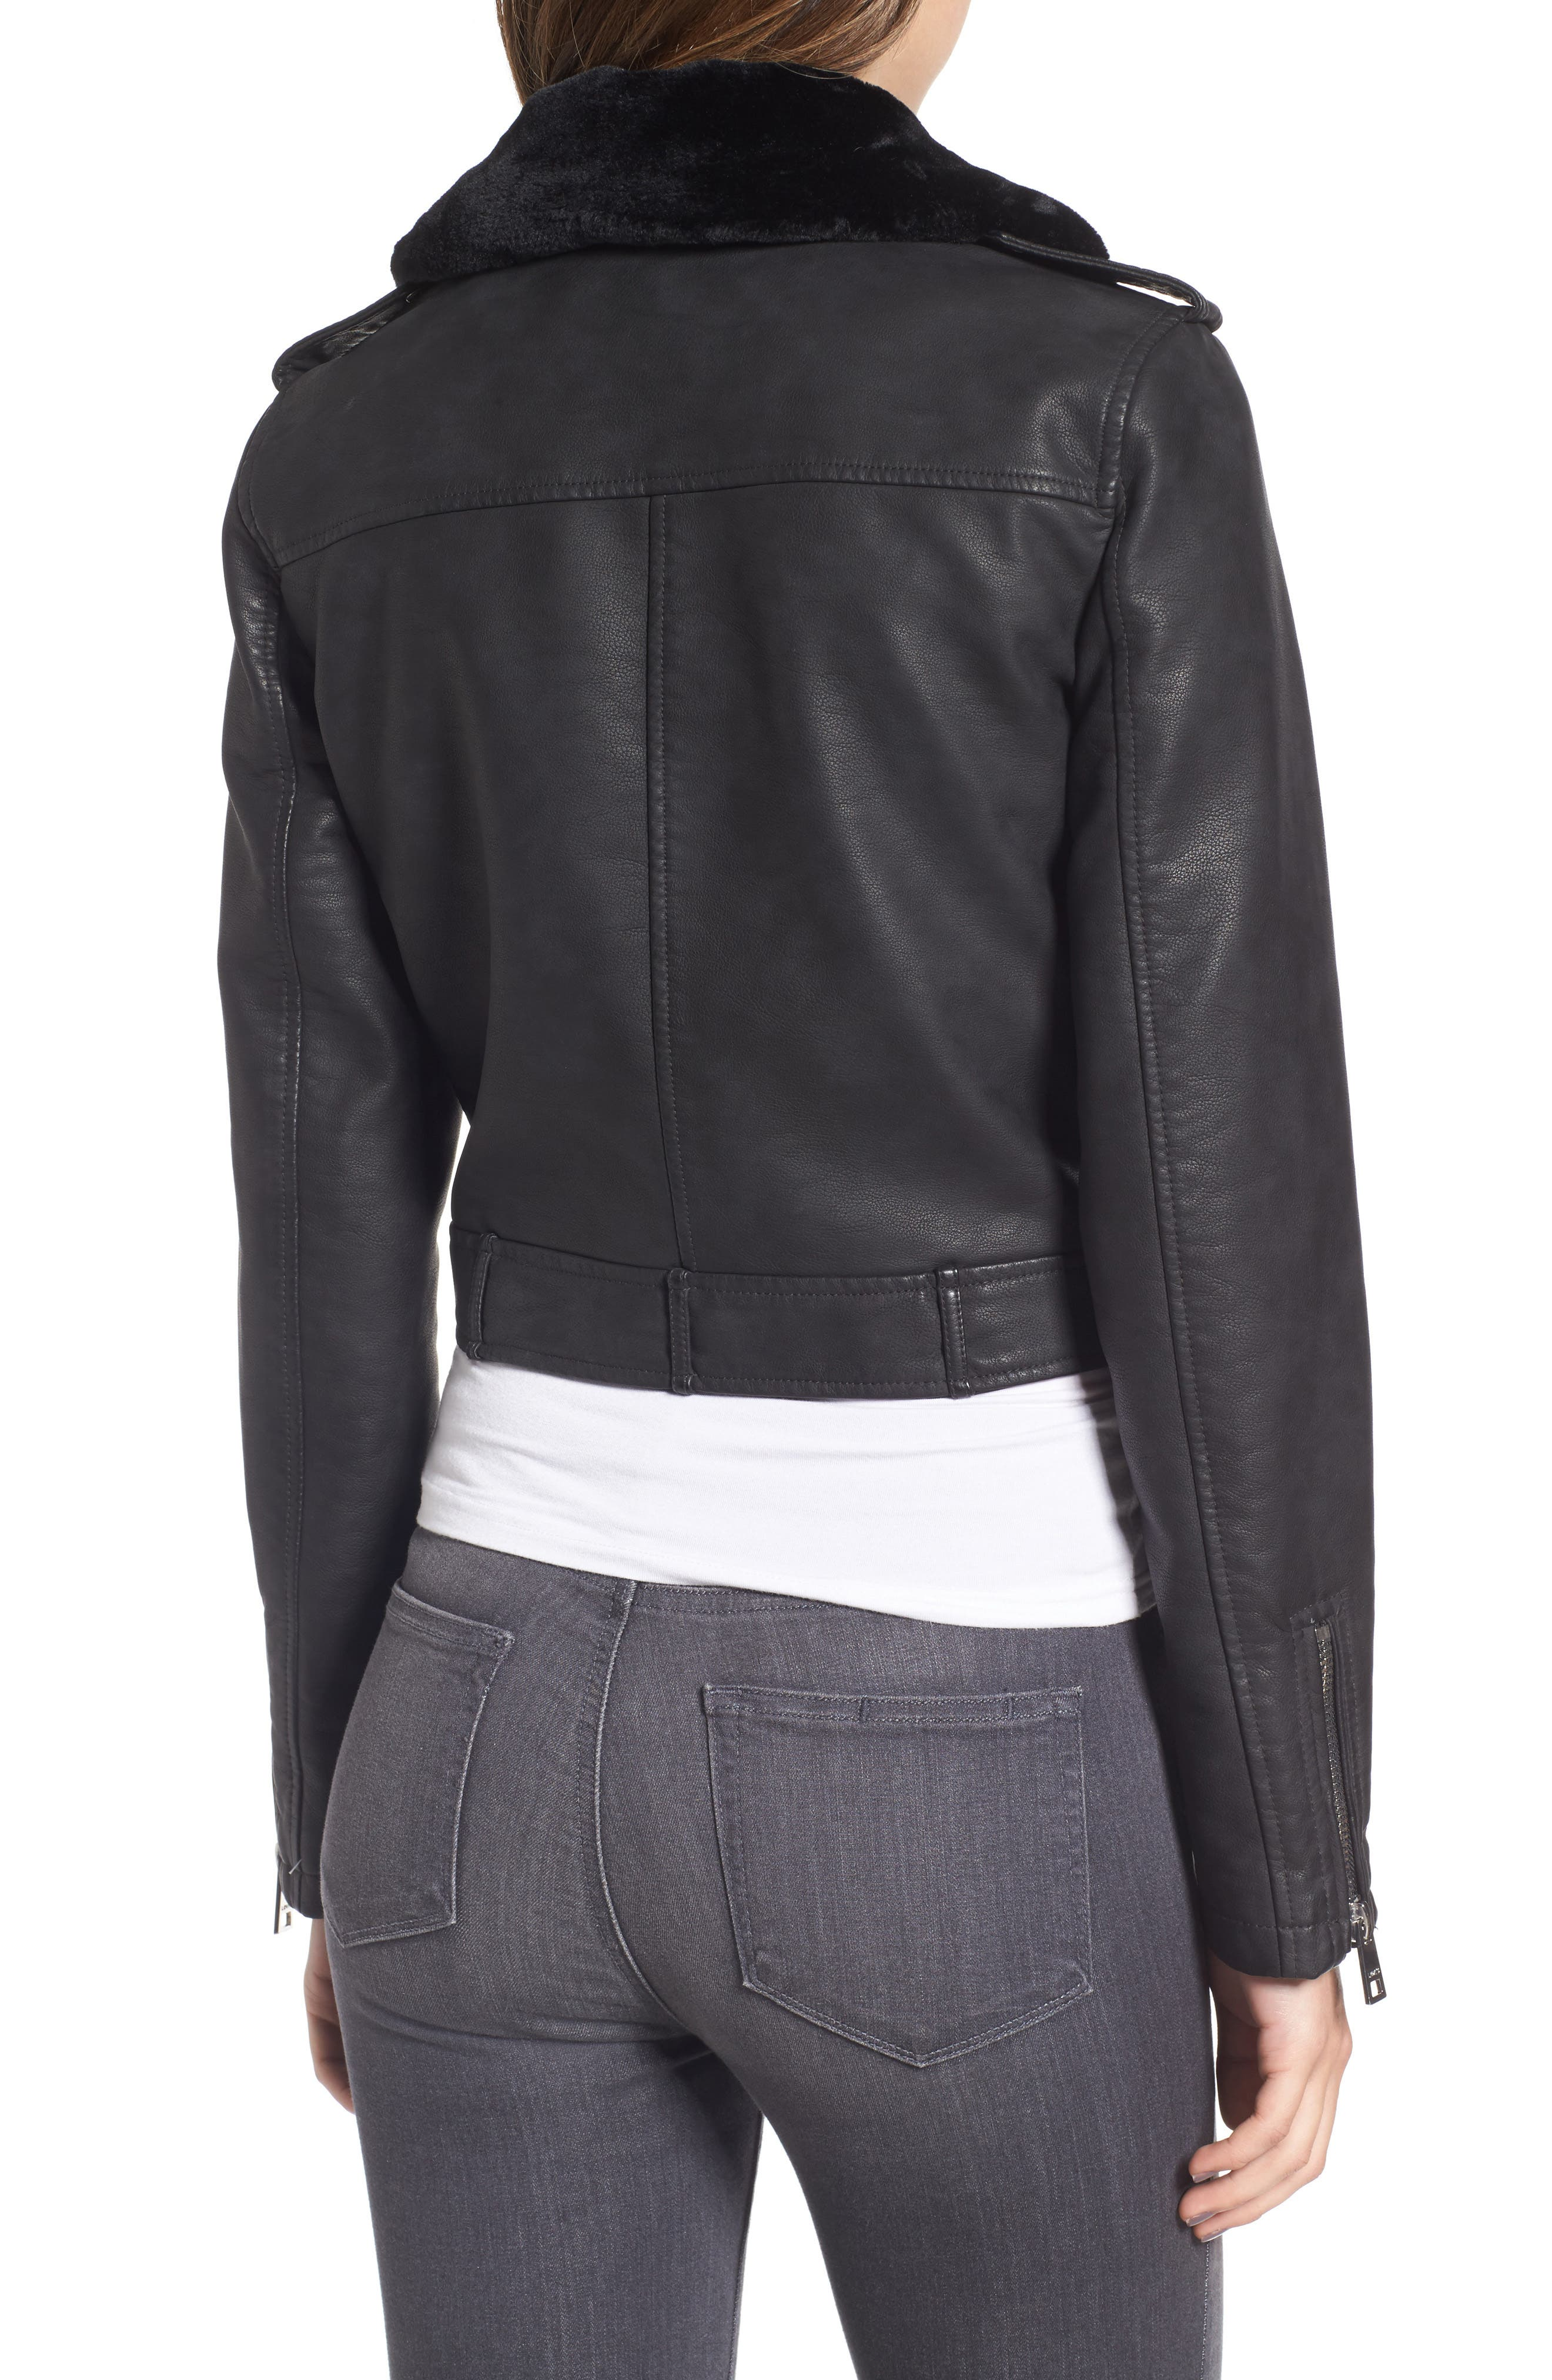 Levis<sup>®</sup> Sherpa Faux Leather Moto Jacket with Faux Fur Collar,                             Alternate thumbnail 2, color,                             Black